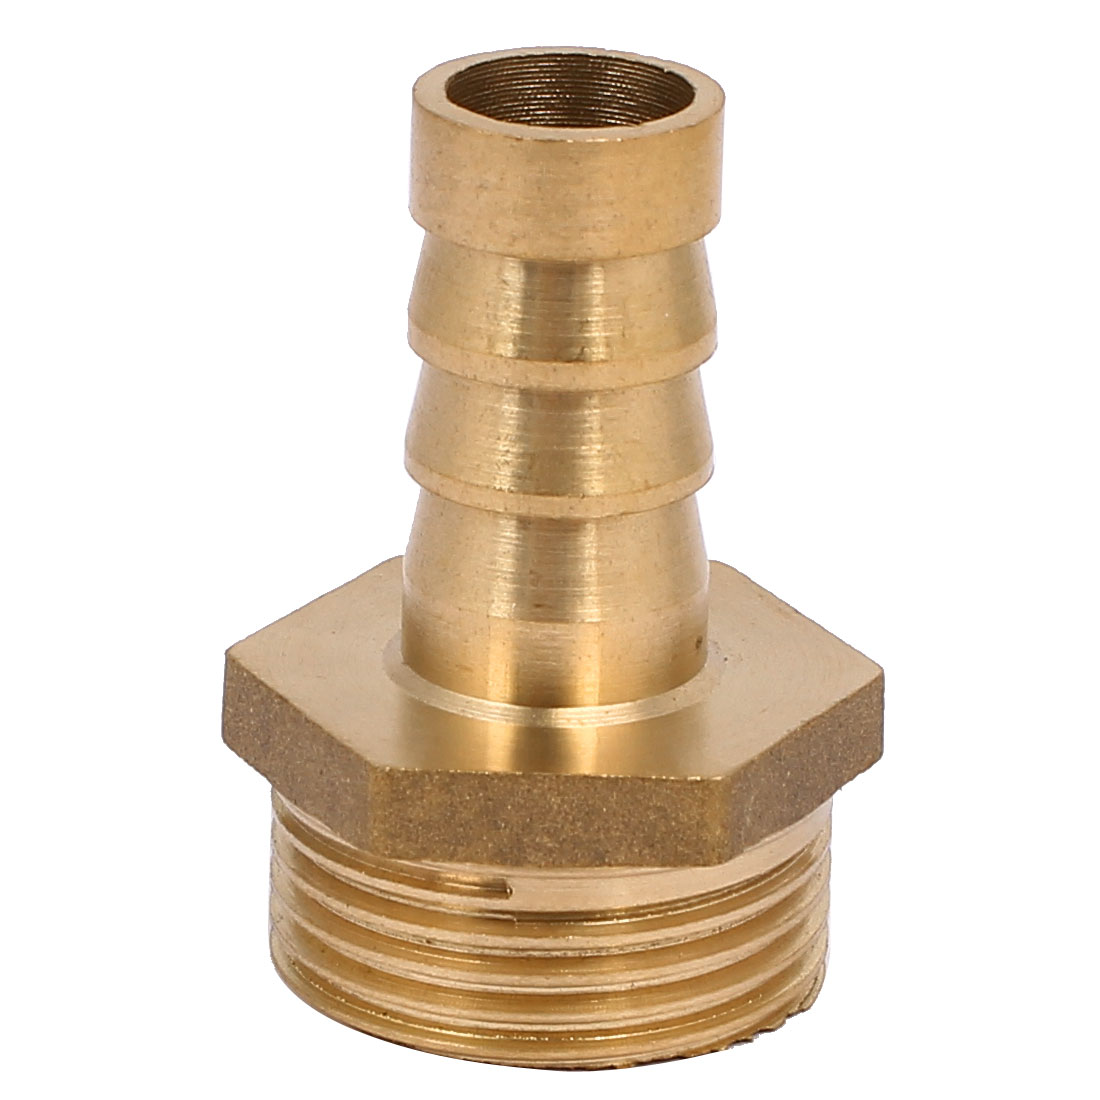 3/4BSP Male Thread 14mm Dia Straight Hose Barb Plug Pipe Connector Joint Fitting